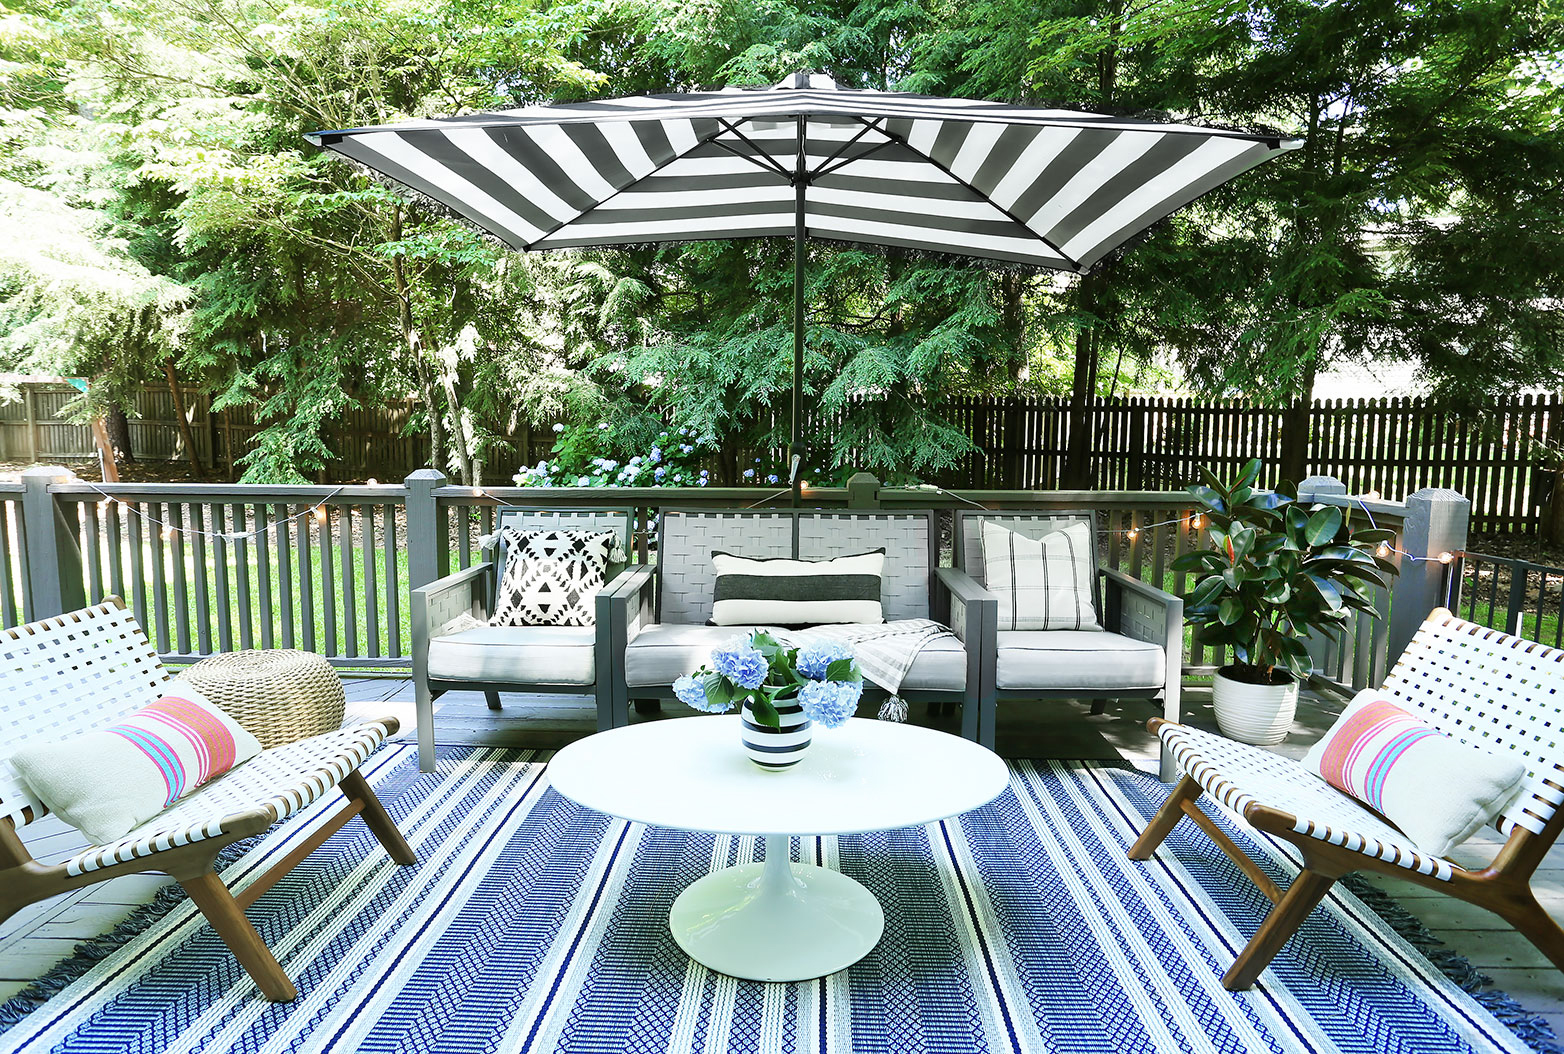 white strap chairs   /   umbrella   /   rug   /   woven pouf   /   coffee table   /   striped vase   /   geo pillow   /   striped pillow   /   cafe lights